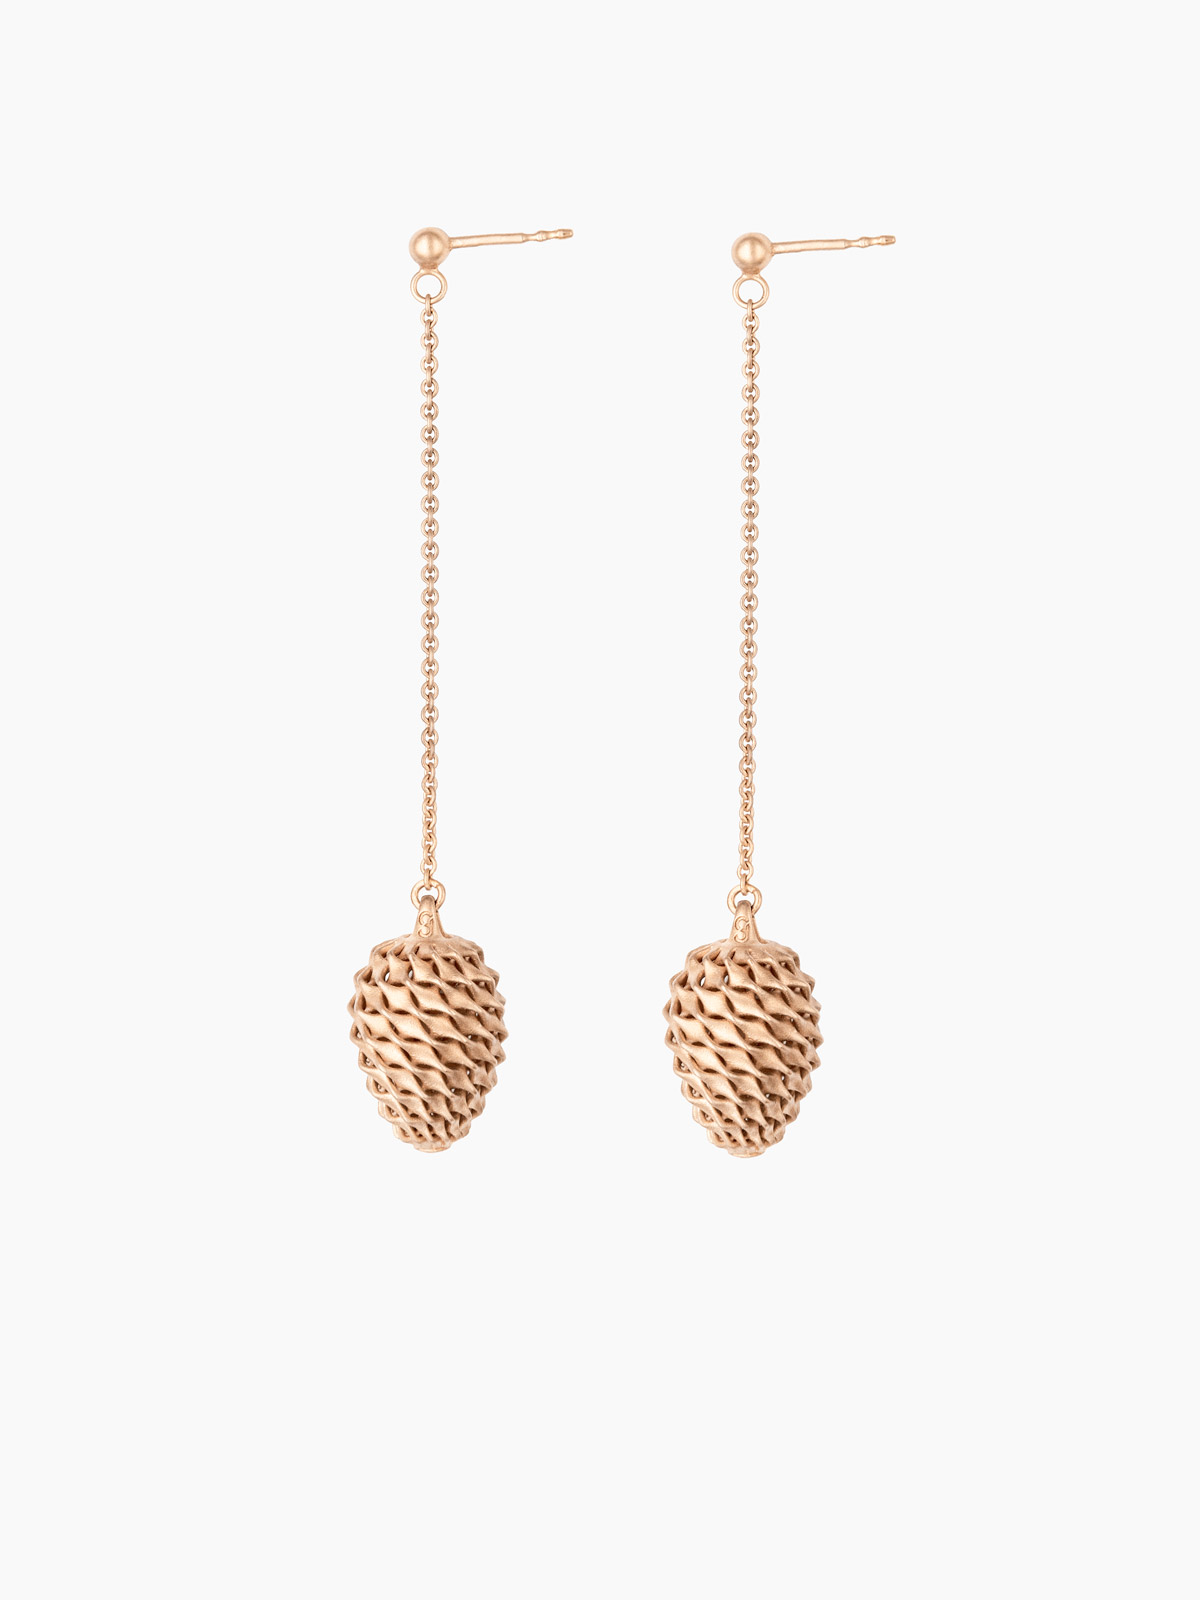 SIAN Neta Earrings